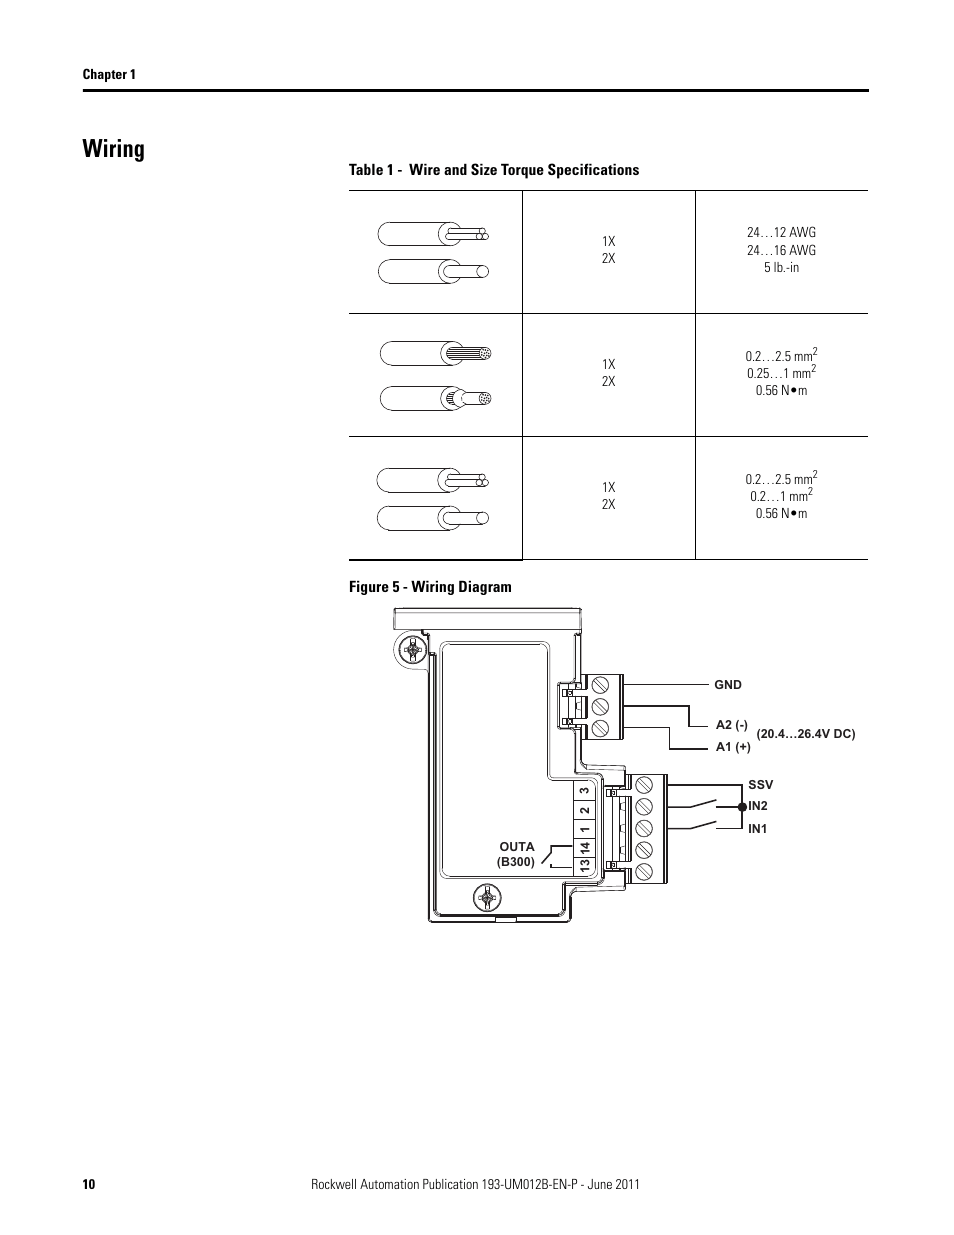 hight resolution of e1 wiring diagram wiring diagram home f21 e1 wiring diagram e1 wiring diagram